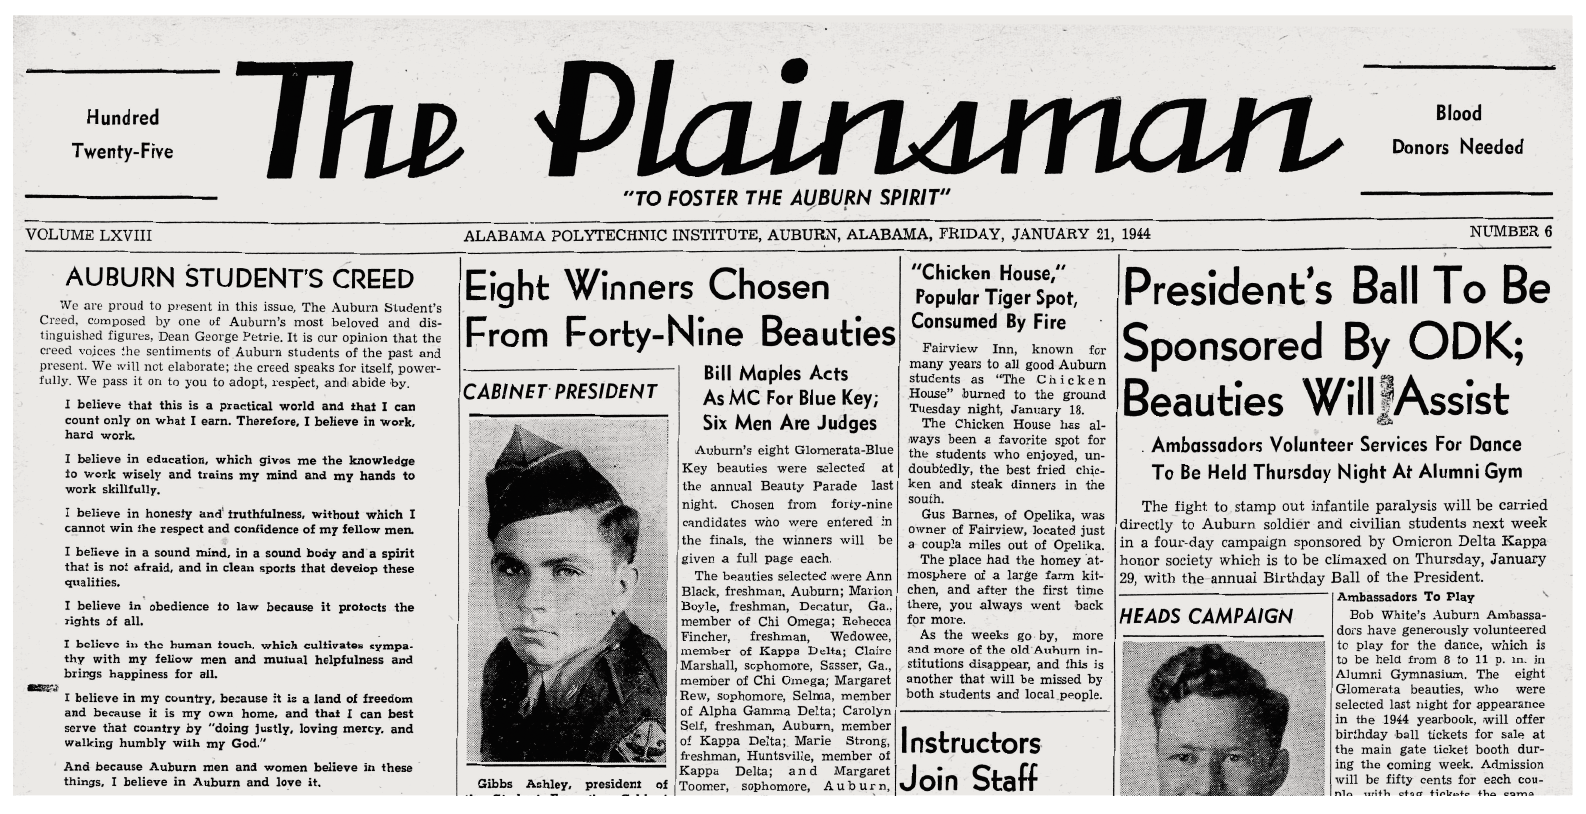 January 21, 1944 Plainsman